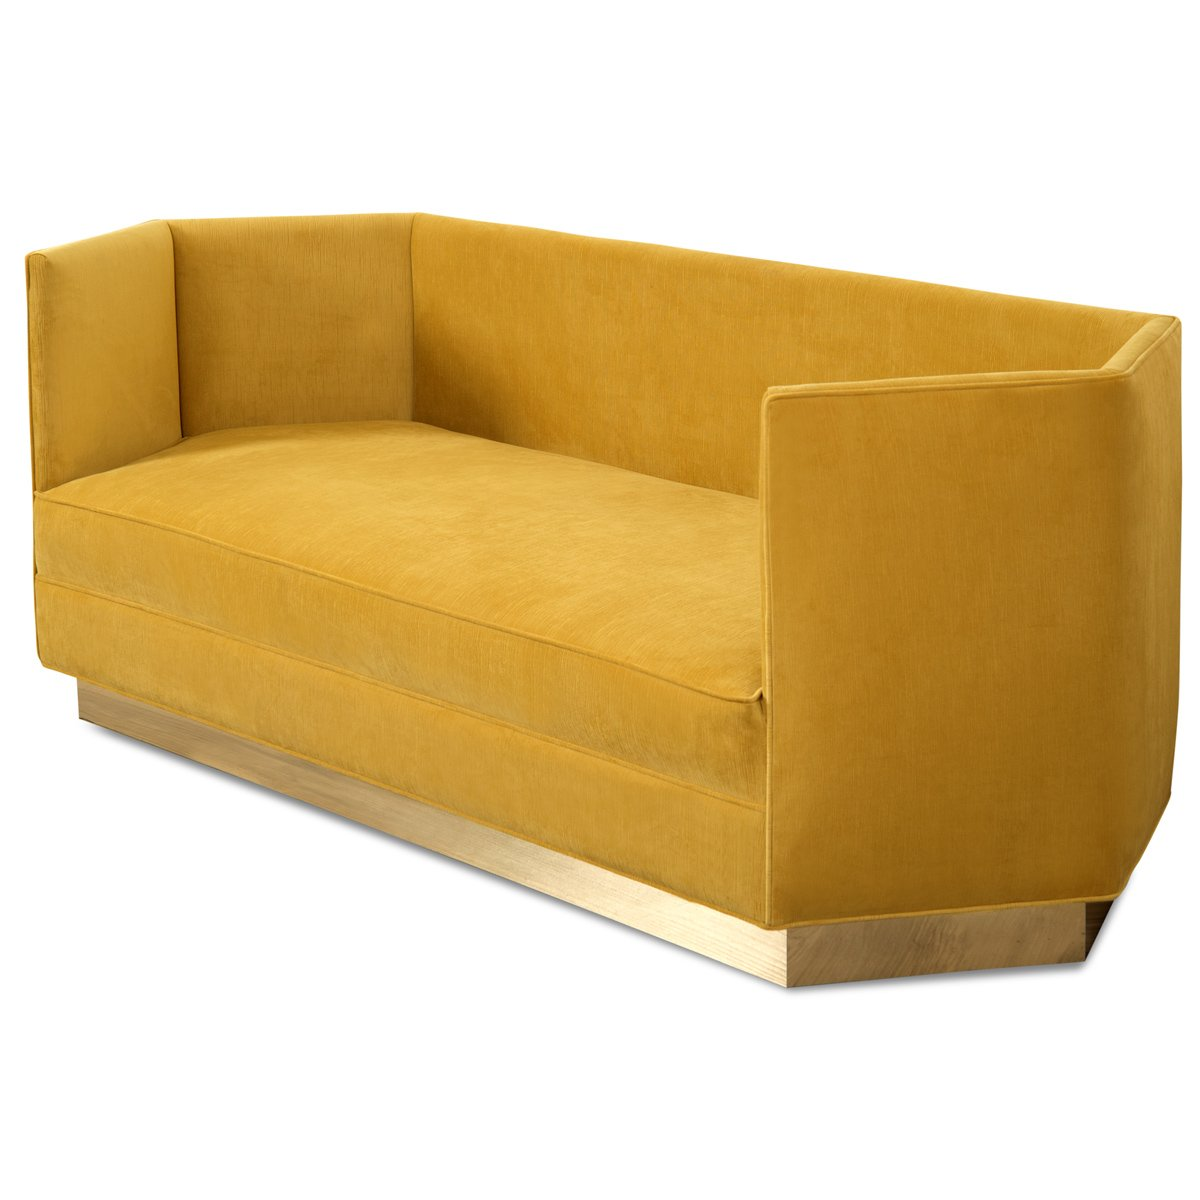 French Modern Yellow Velvet Fabric Couch,Gold Stainless Steel Base Sofa For  Event Wedding Furniture - Buy French Yellow Linen Couch,Gold Stainless ...